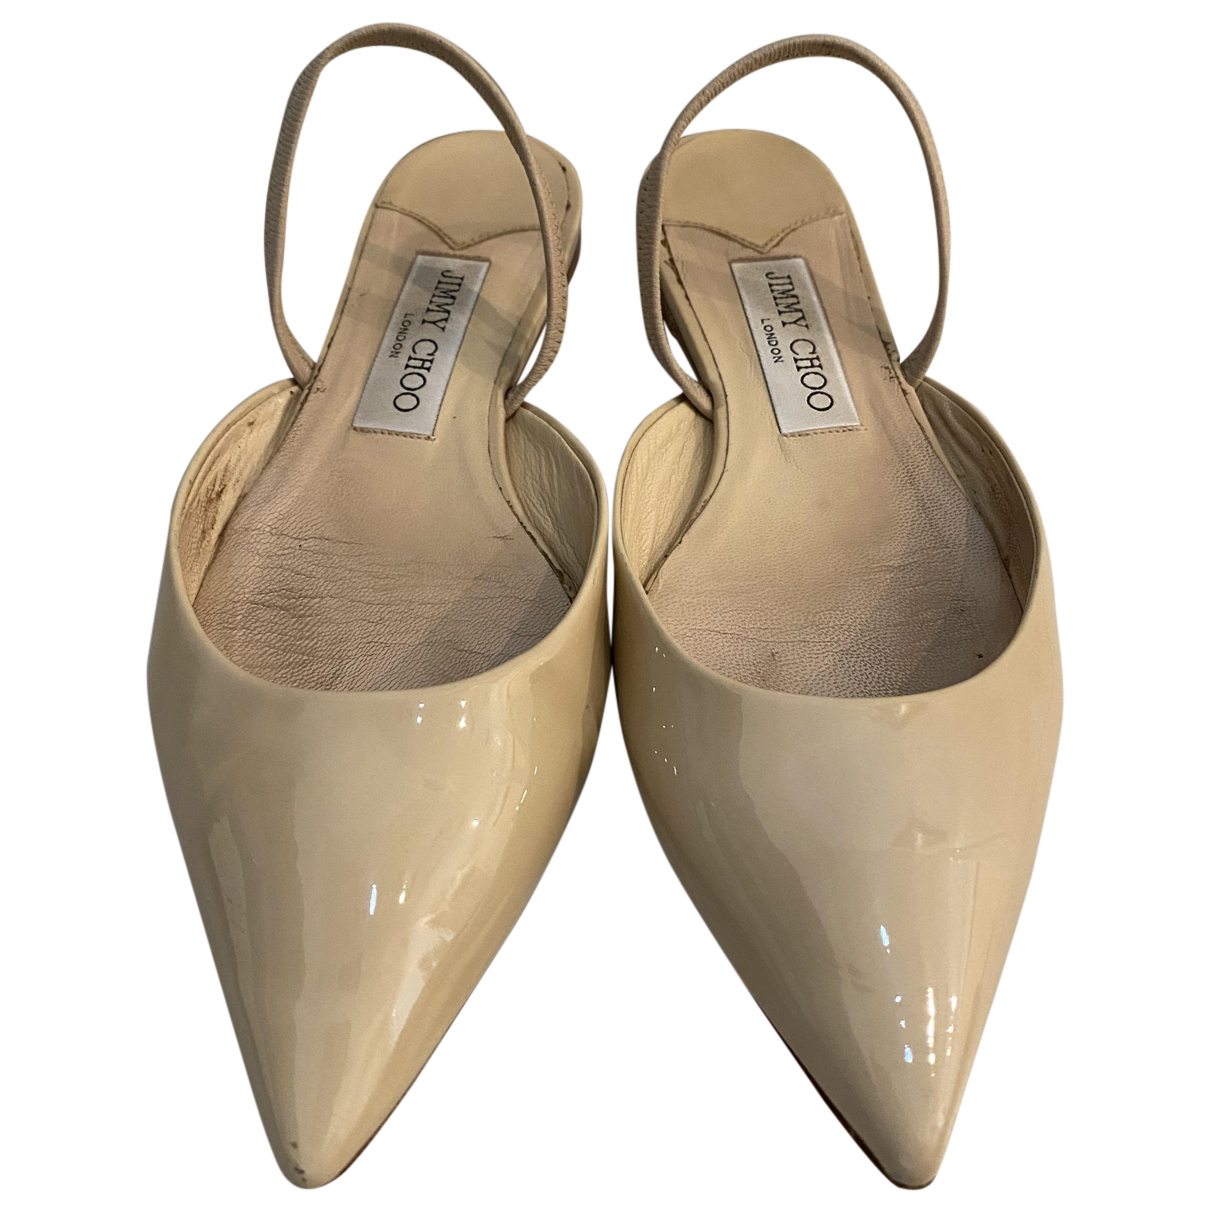 Jimmy Choo N Beige Leather Sandals for Women 37.5 EU